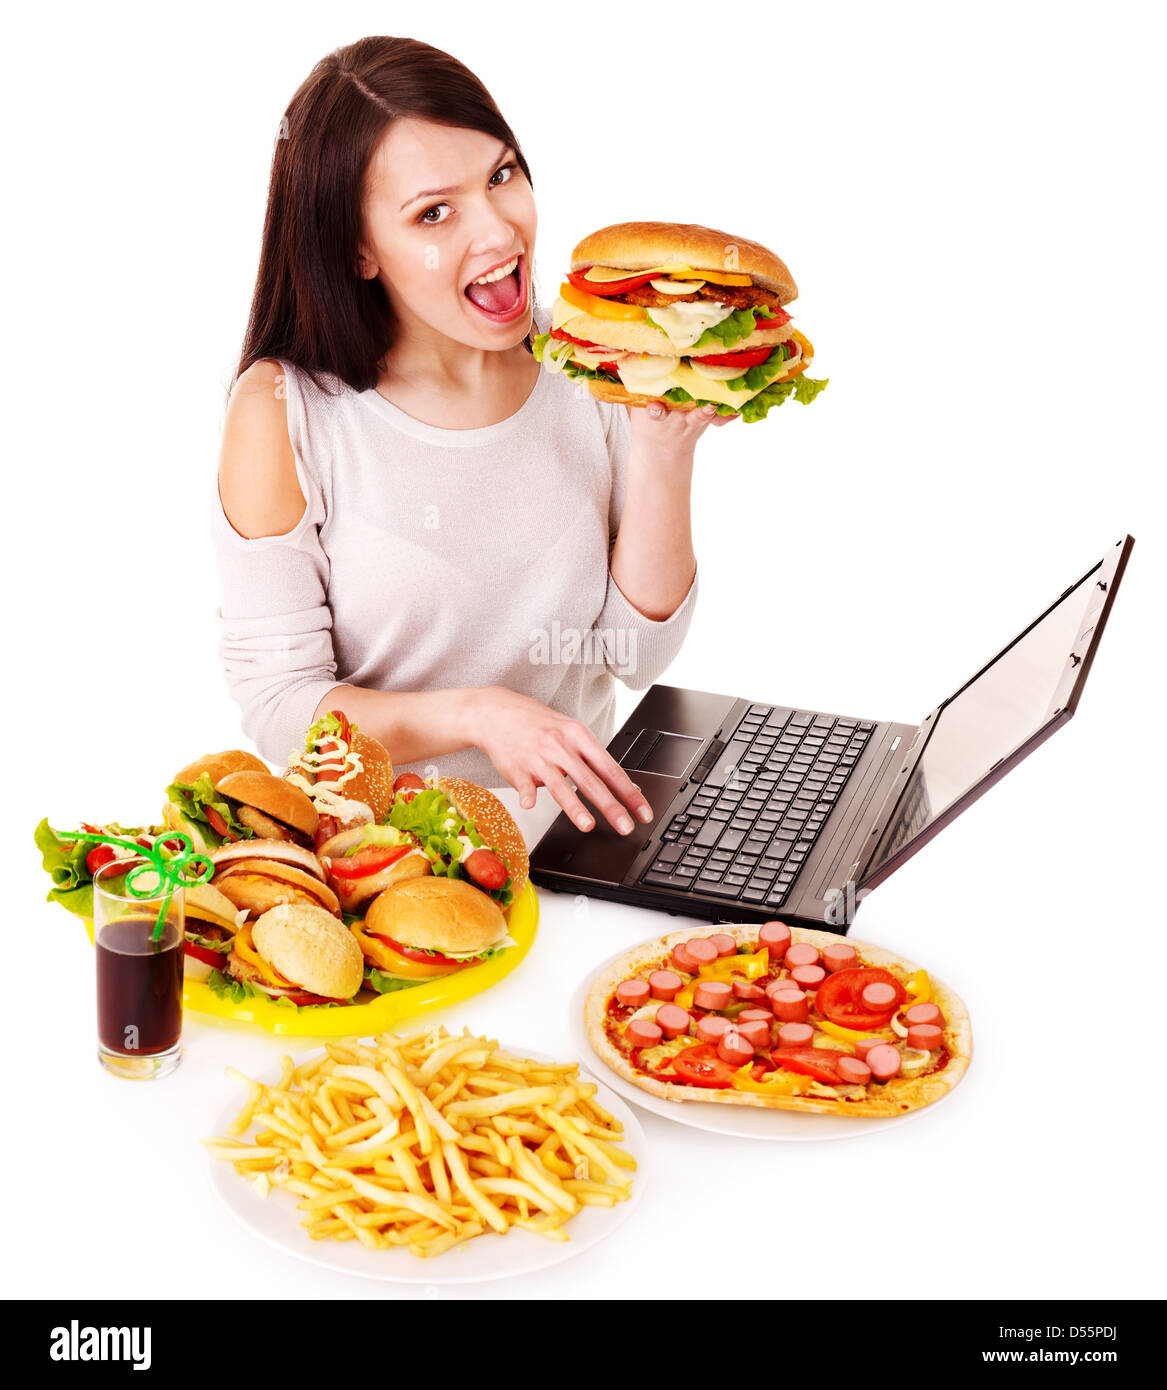 Woman eating fast food at work. Isolated. - Stock Image